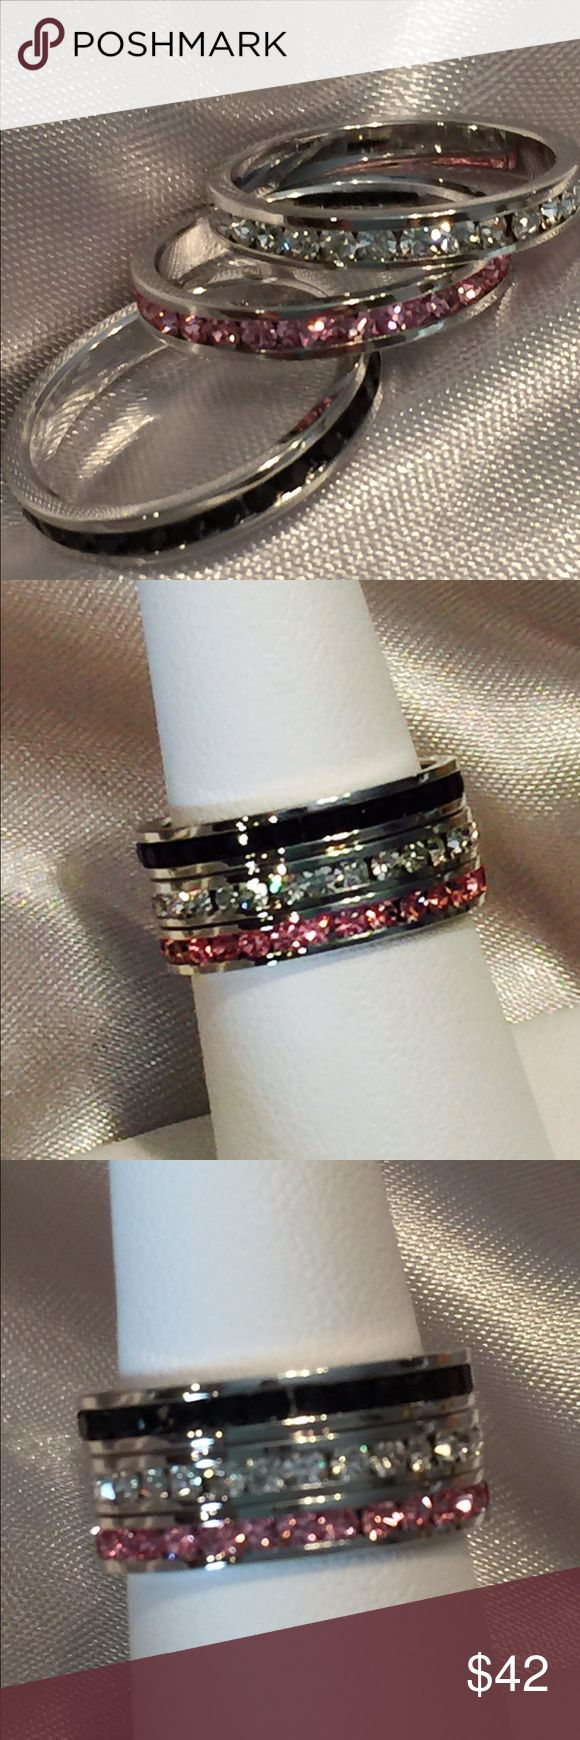 Stainless Steel Gemstone Stacker Ring Set Pink & White Topaz, and Onyx stone stacker bands, set in stainless steel, hypoallergenic channel settings. Size Jewelry Rings